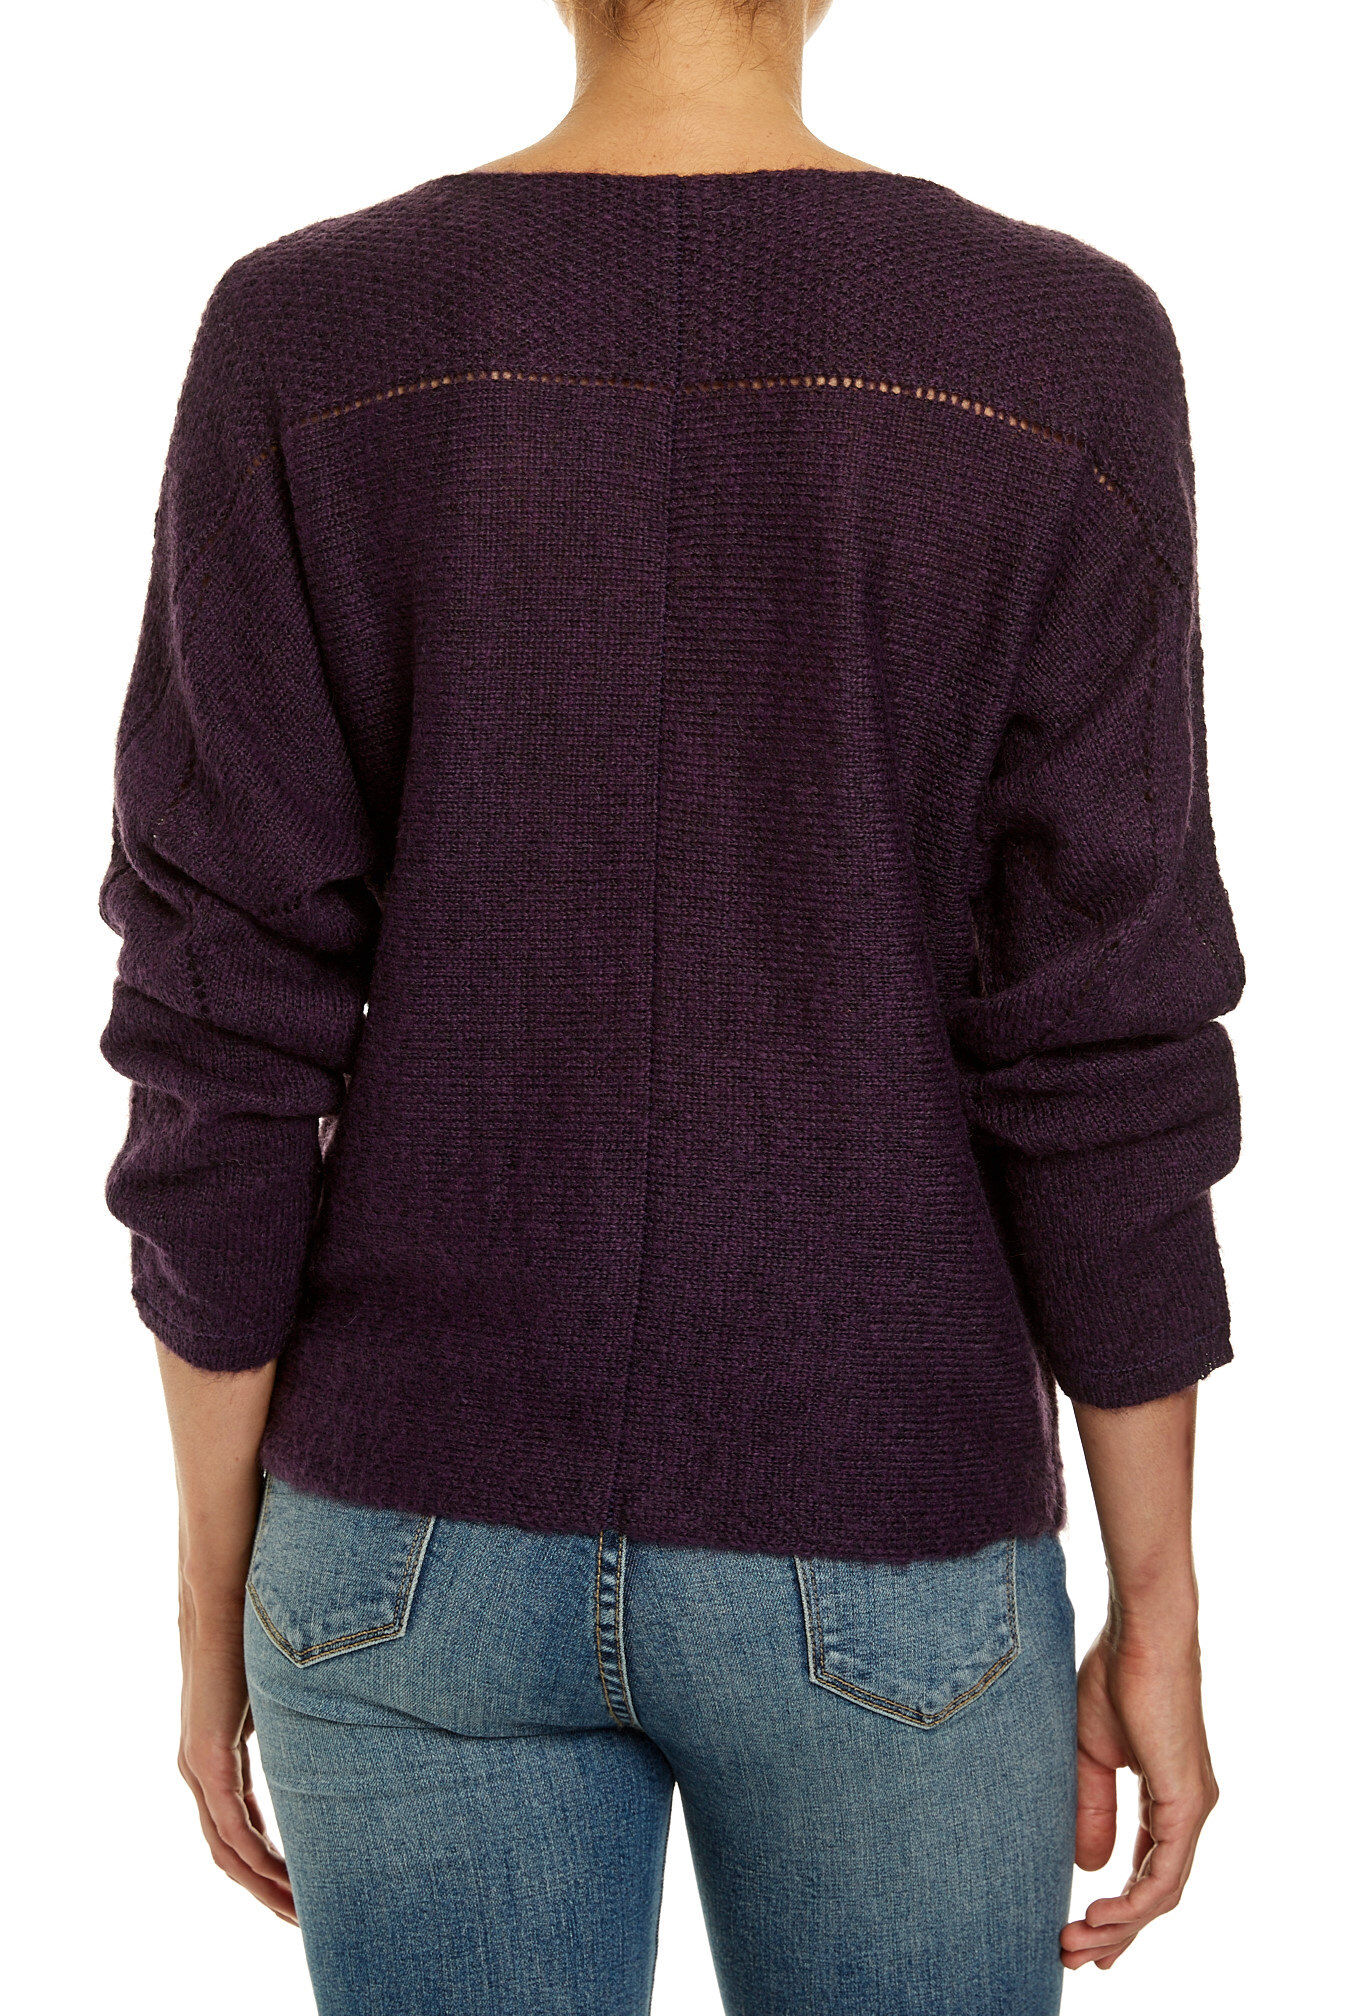 NEW-JAG-WOMENS-MOHAIR-DOLMAN-KNIT-Jumpers-Cardigans